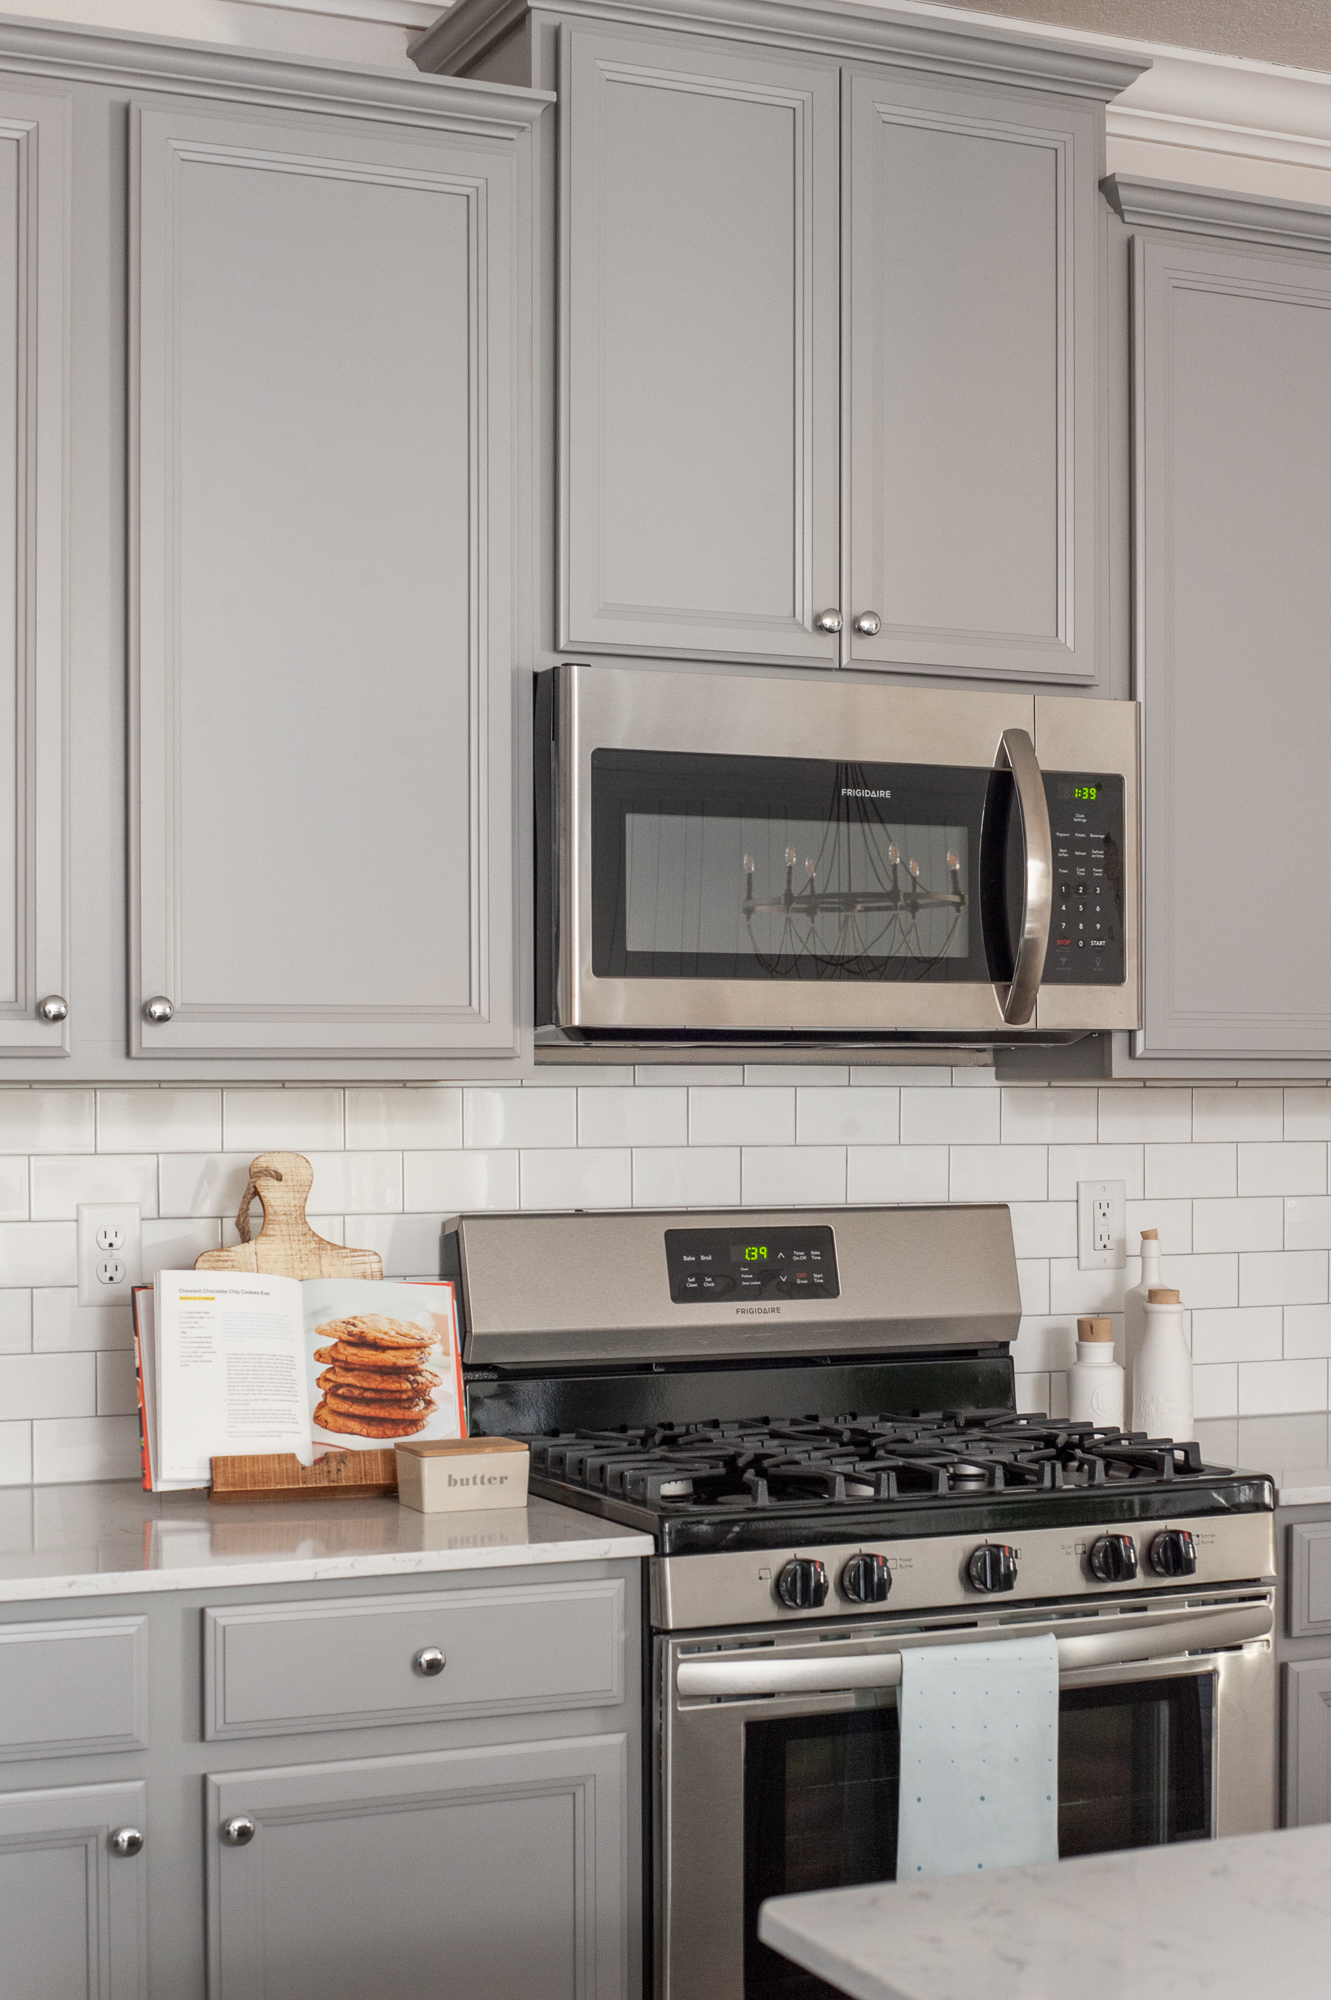 Micamy_Interior Designer_Design_Interior_Model_Merchandising_Kitchen_Grey_Cabinets_Forty West_Lennar_Place Setting_SubwayTile_Farmhouse_Gas Oven.jpg